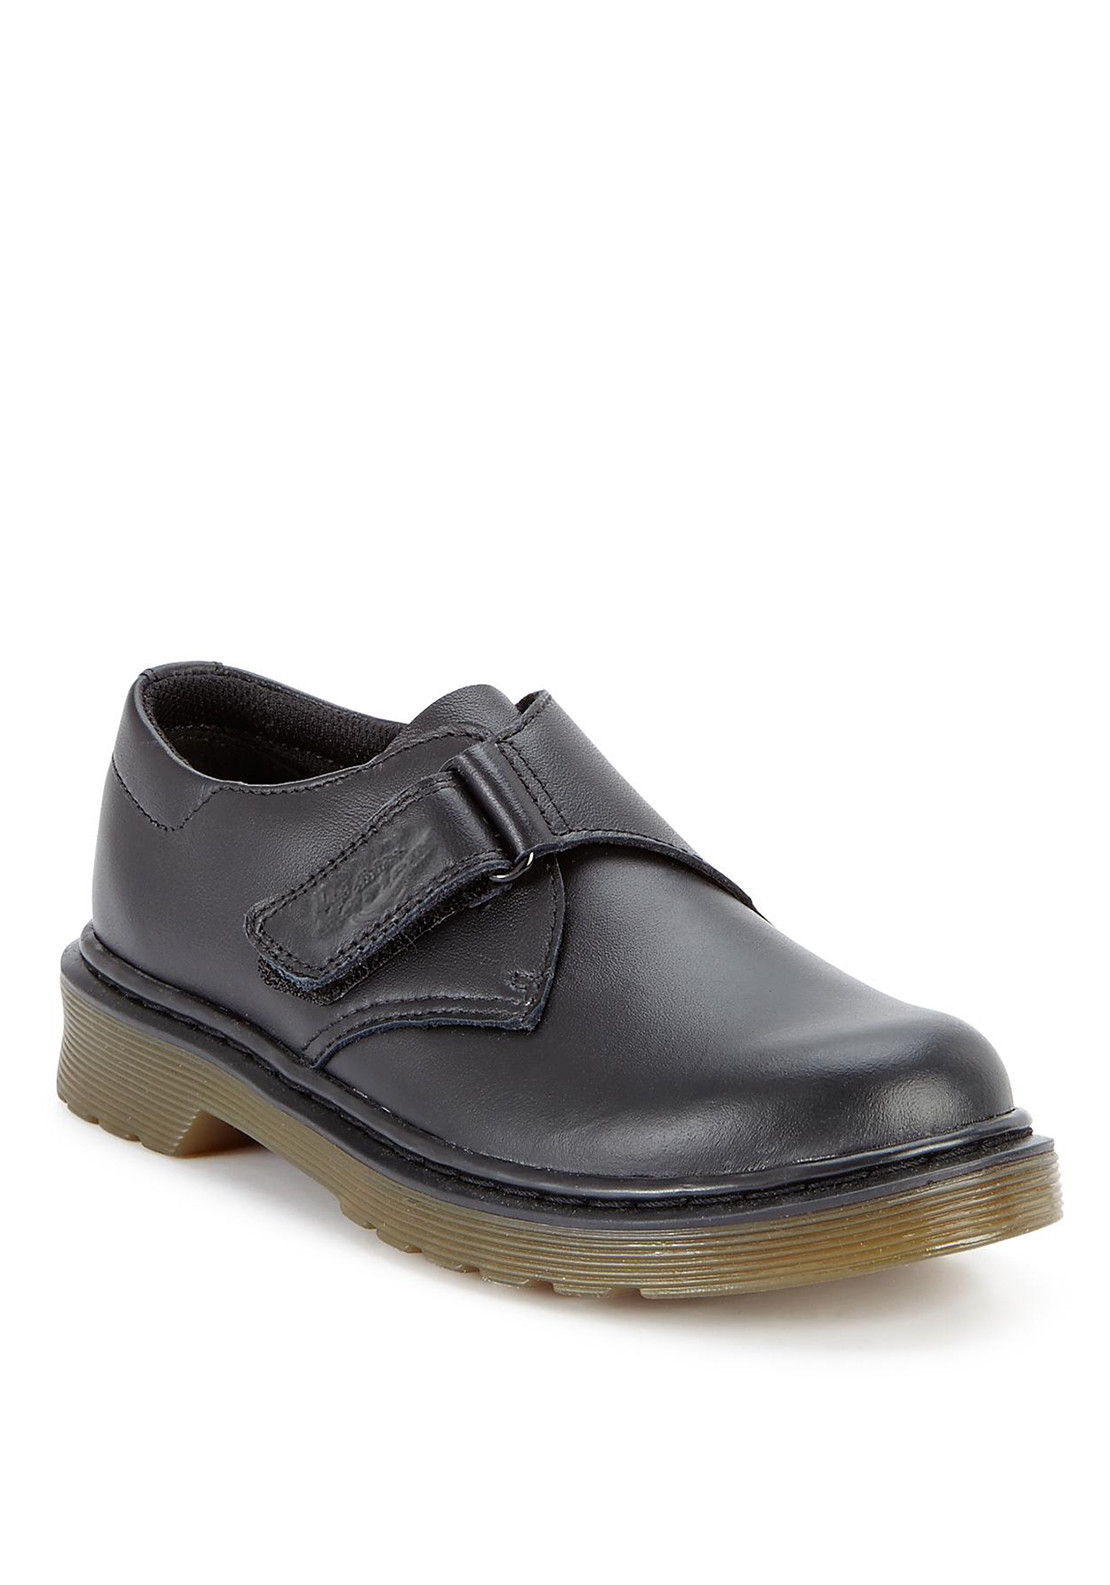 Dr.Martens Airwair Children's Jerry Leather Shoe, Black